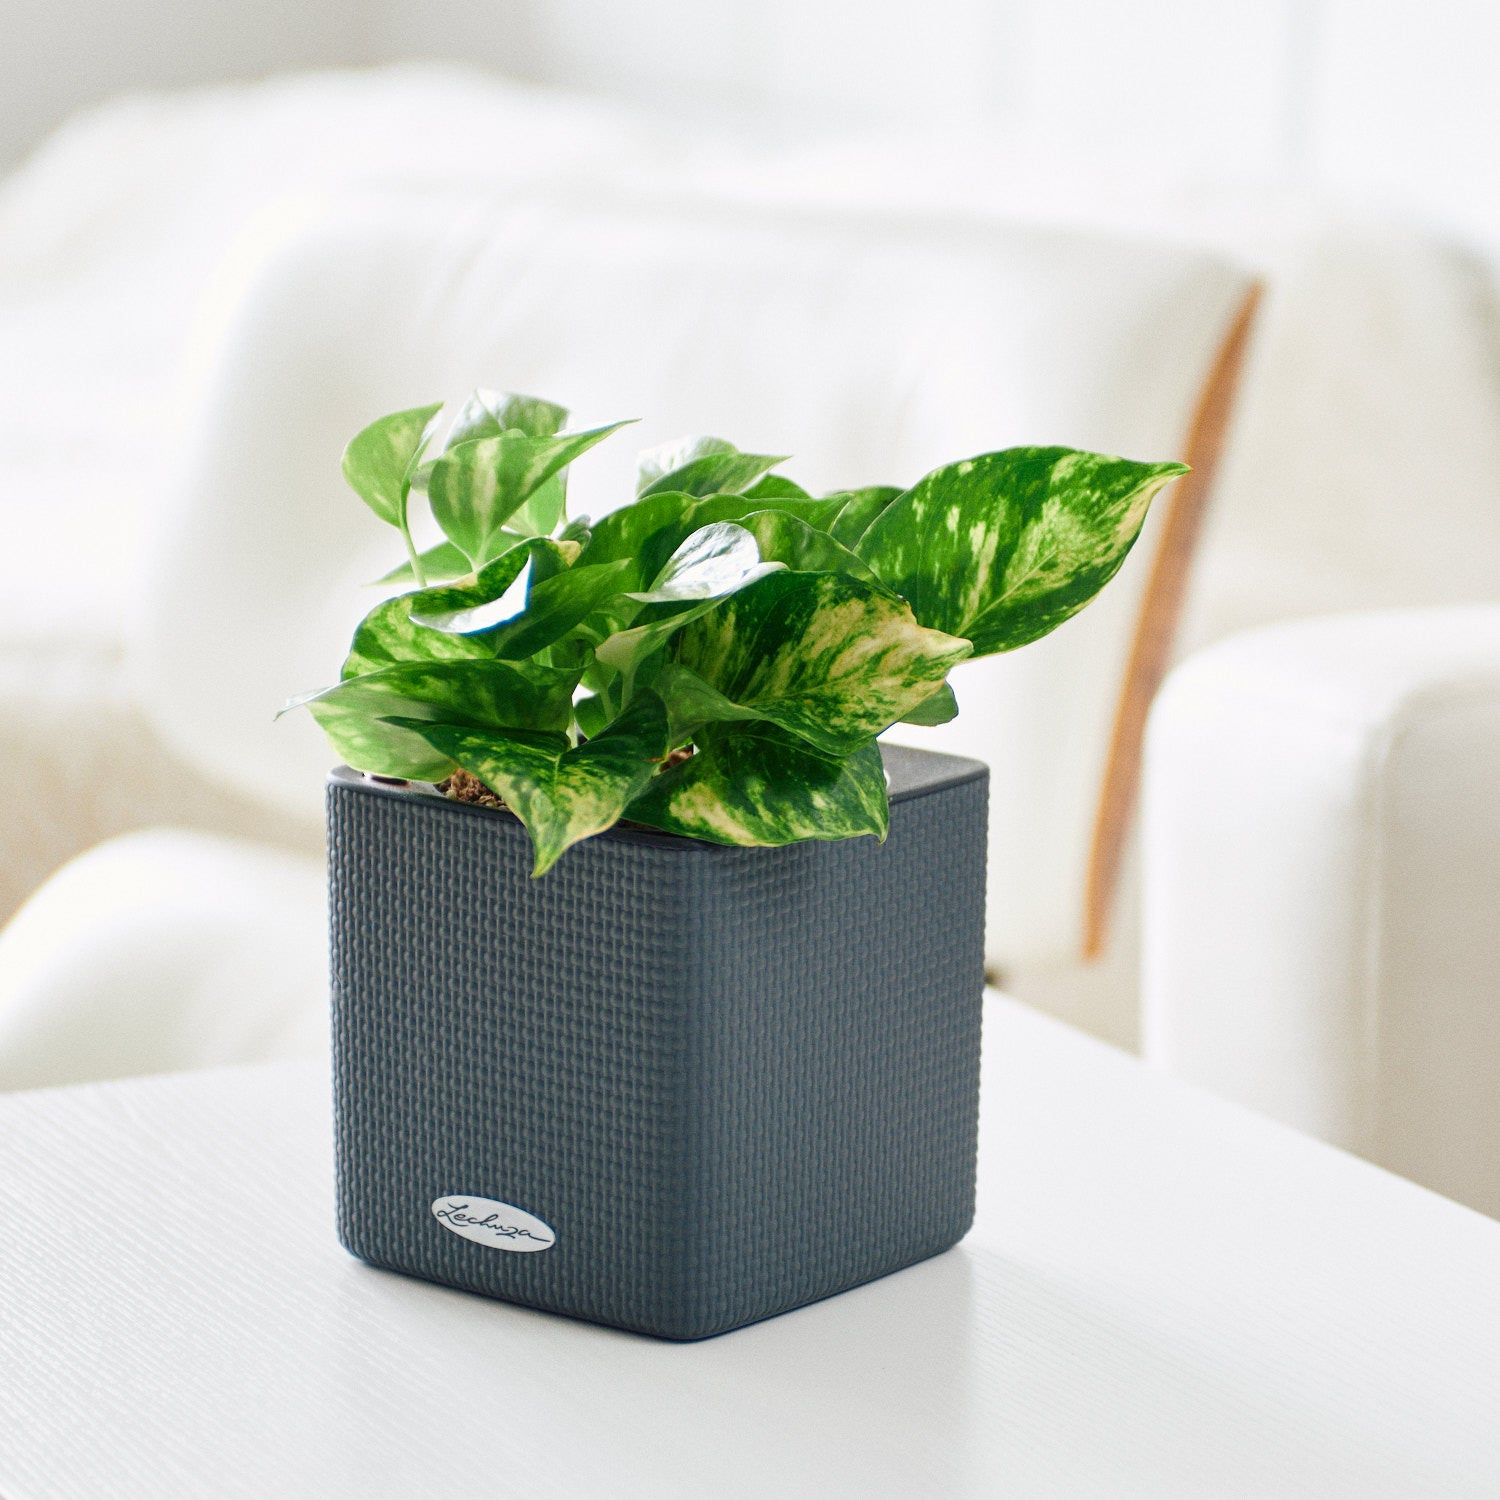 Pothos Variegated In Lechuza Cube 14 Slate Planter | My City Plants